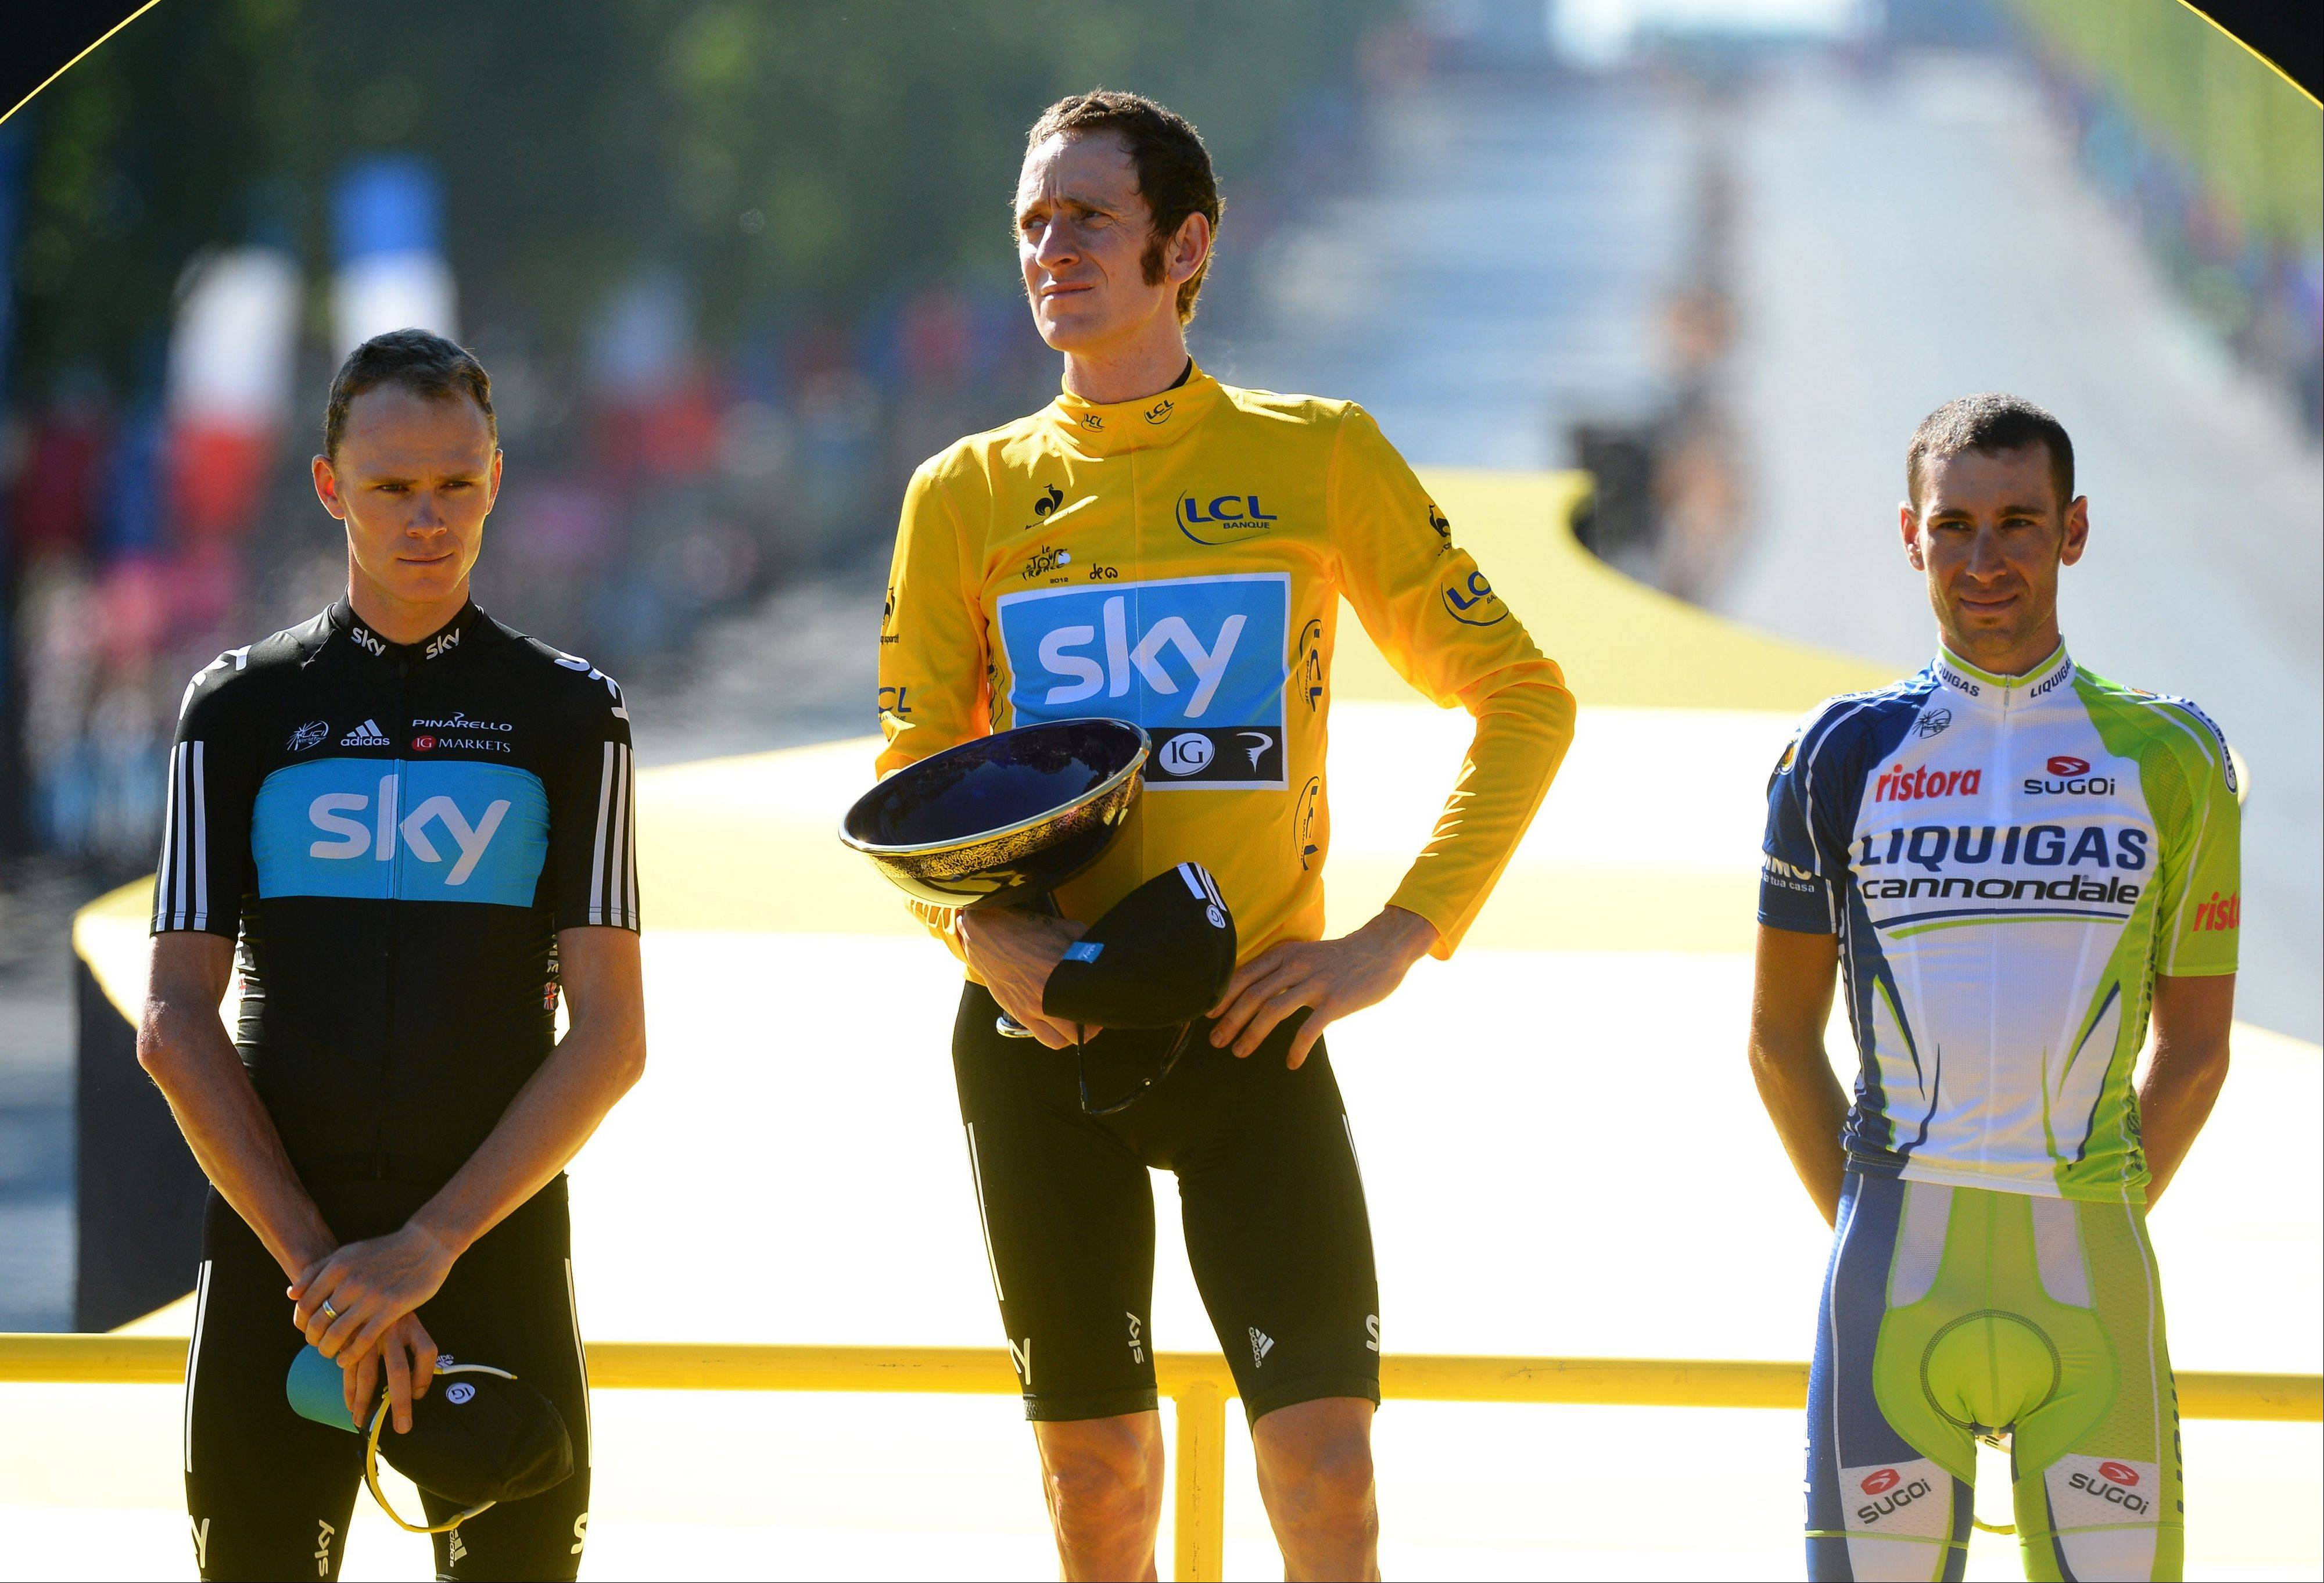 Second place Christopher Froome of Britain, left, Tour de France winner Bradley Wiggins of Britain, center, and third place Vincenzo Nibali of Italy, right, on the podium of the Tour de France.